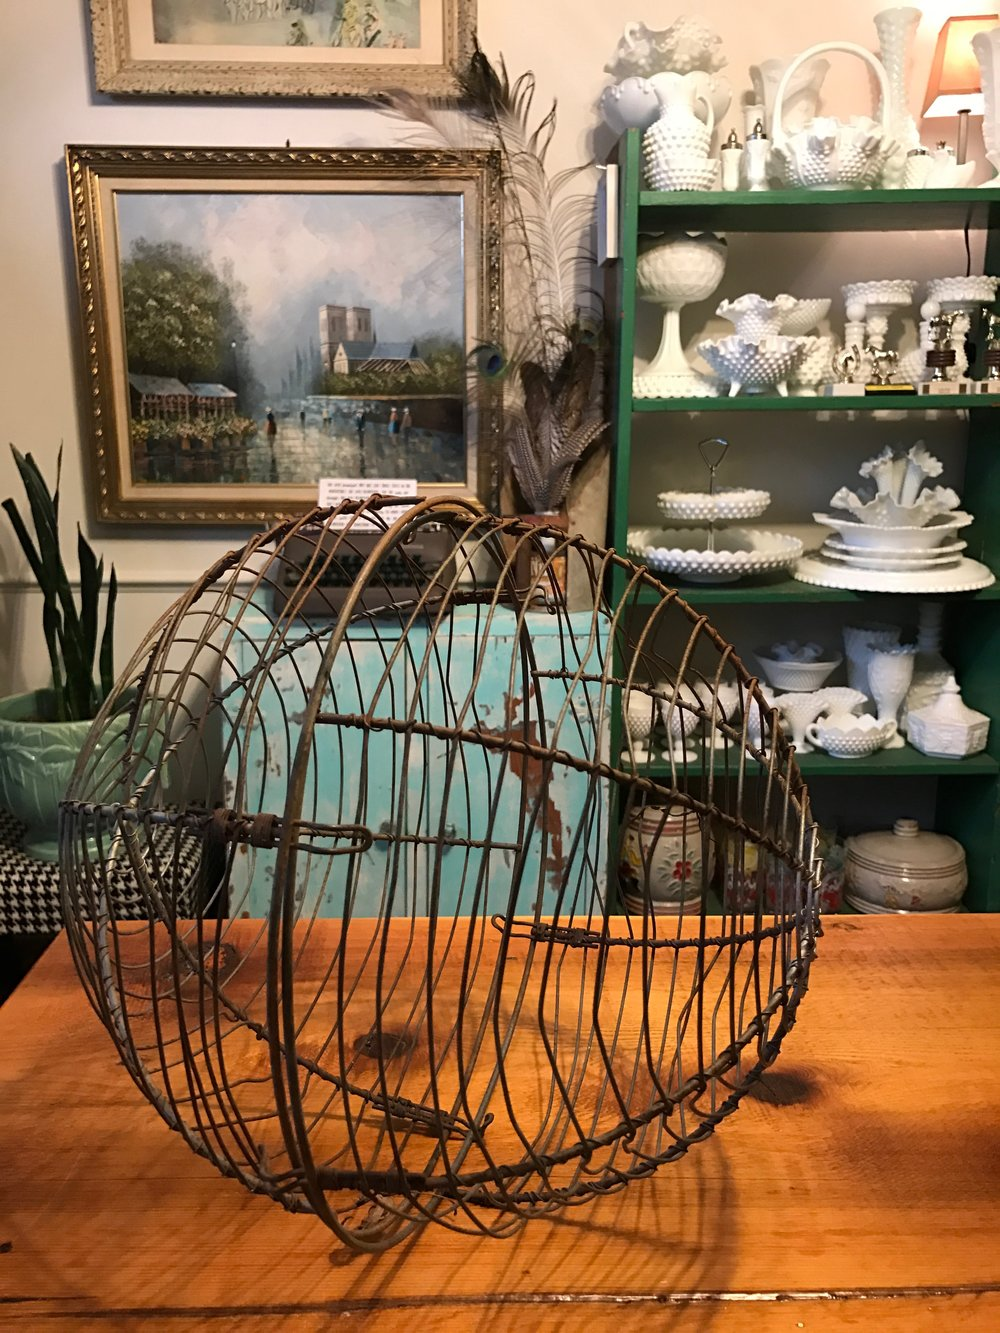 Handmade Antique Metal Orb for Home Decor.